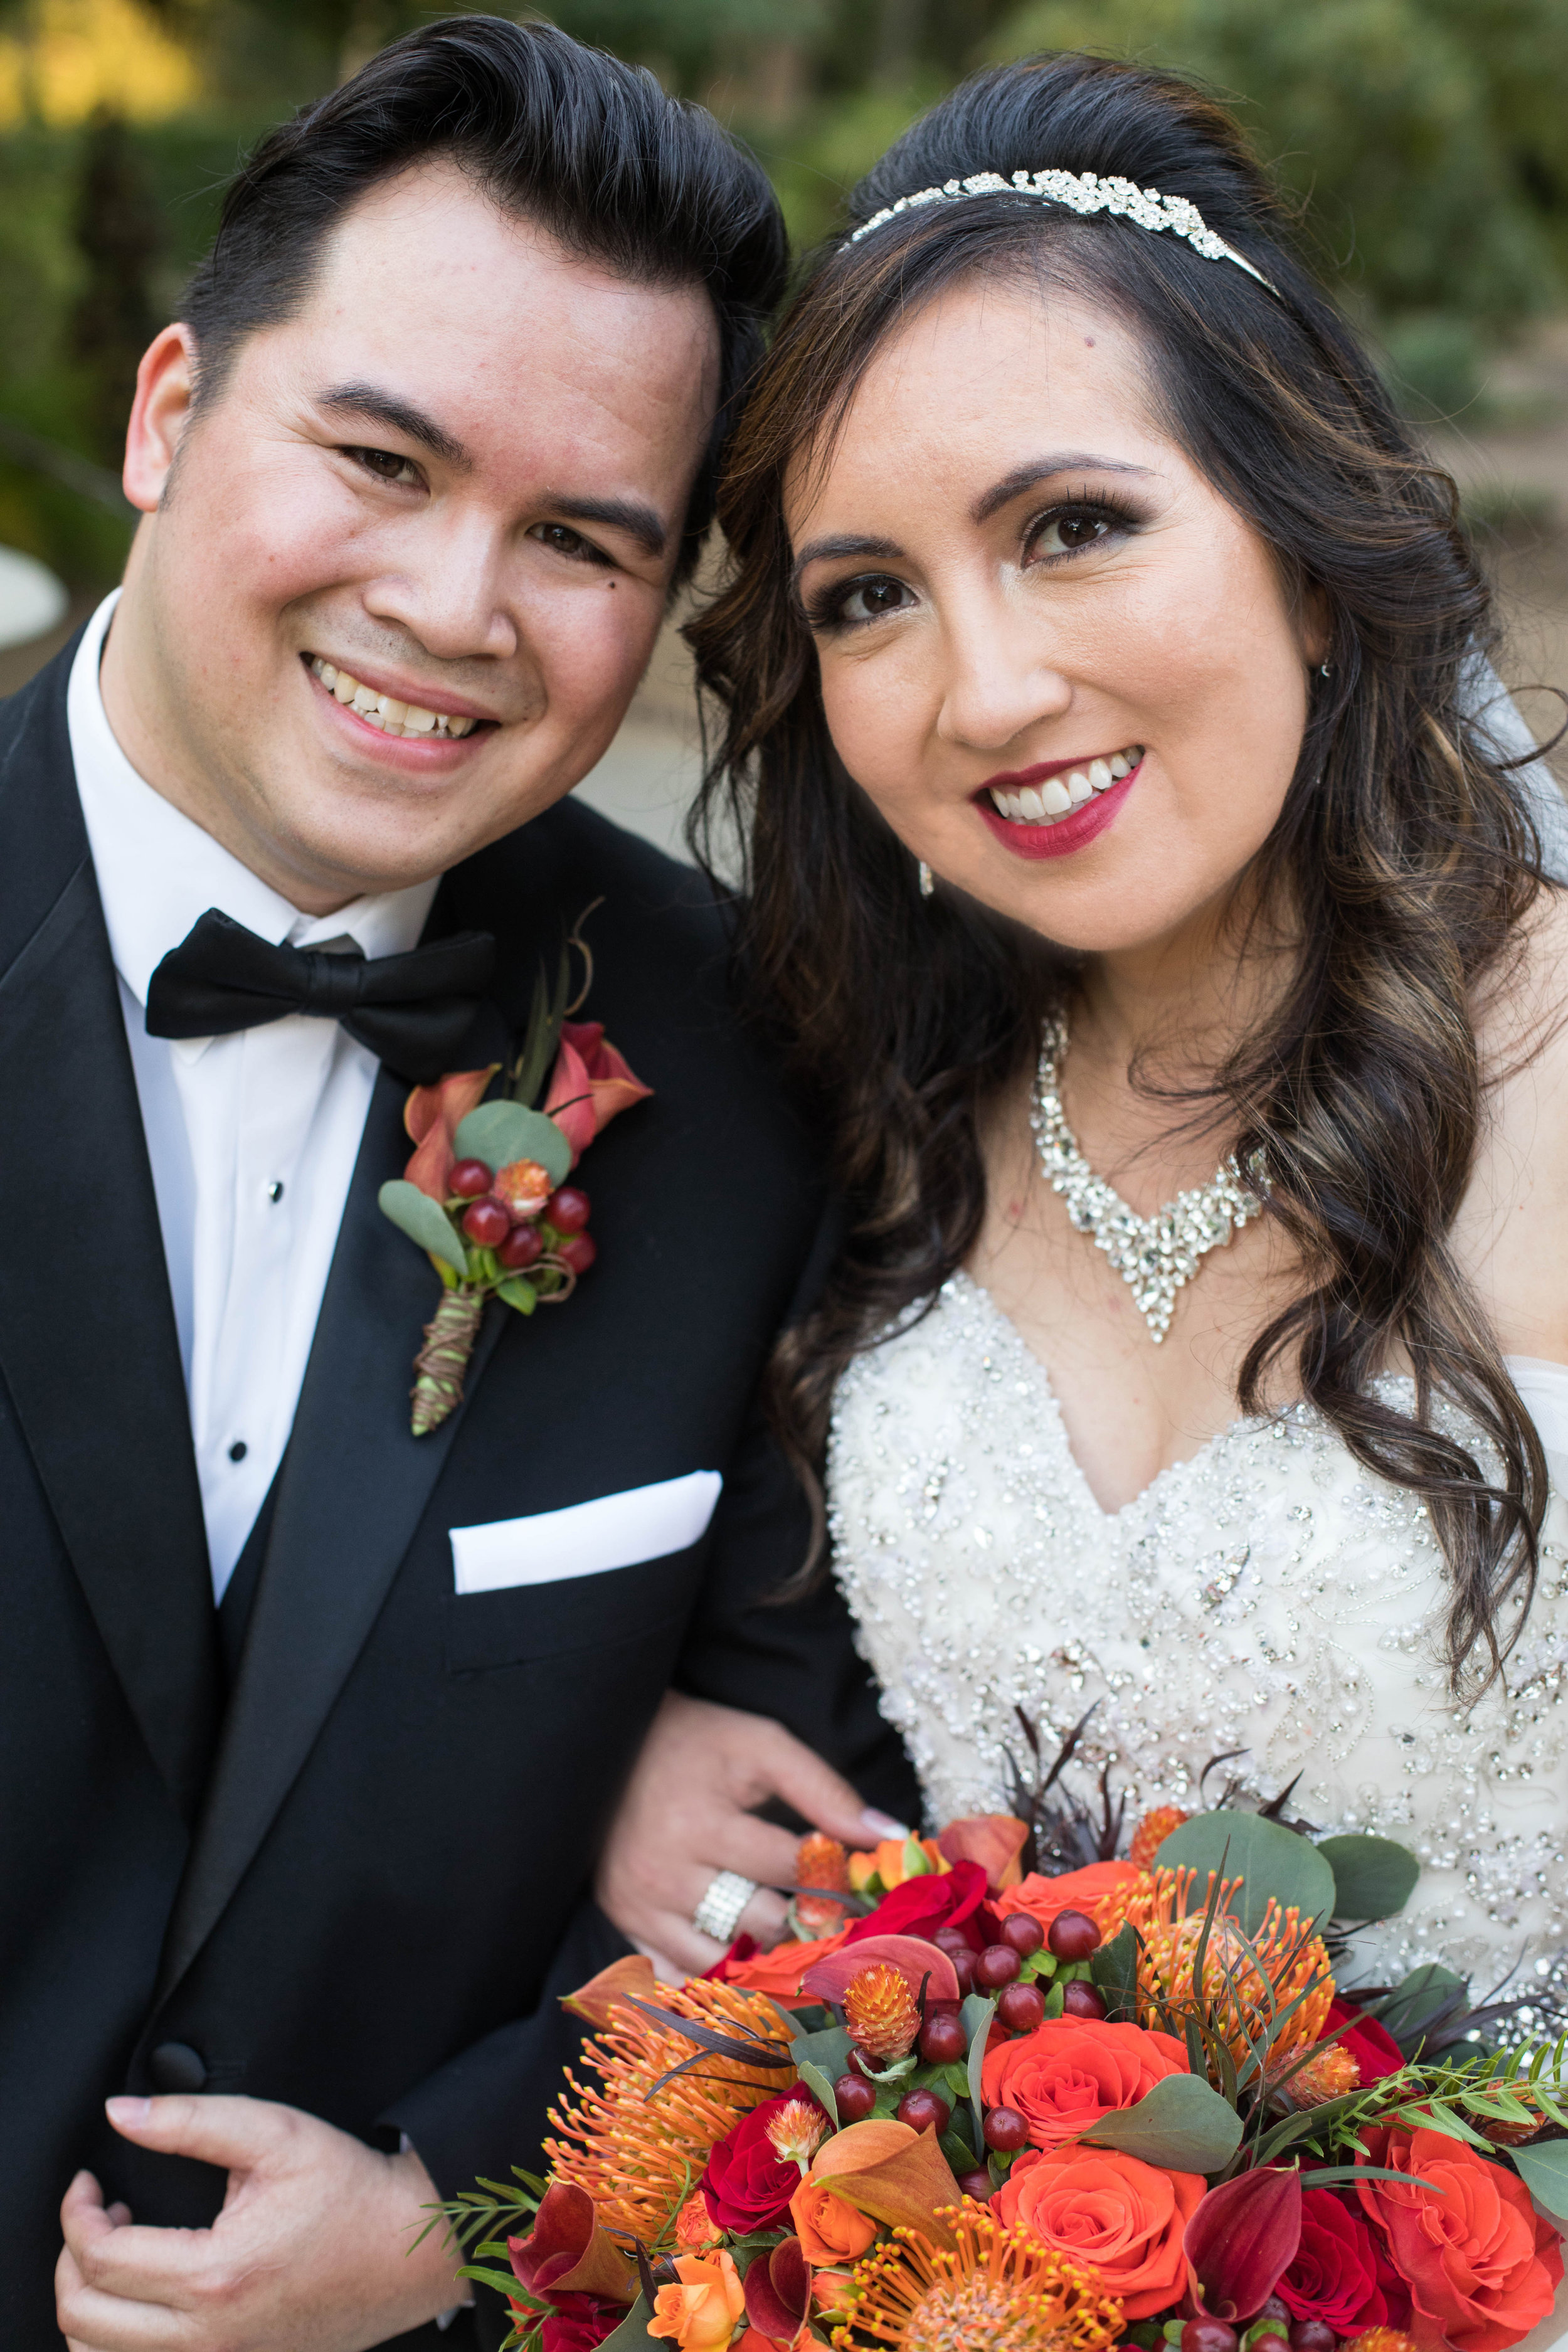 KEVIN + MONICA 2017    They were gorgeous. Thank you so much!!! My family LOVED the flowers and color scheme!